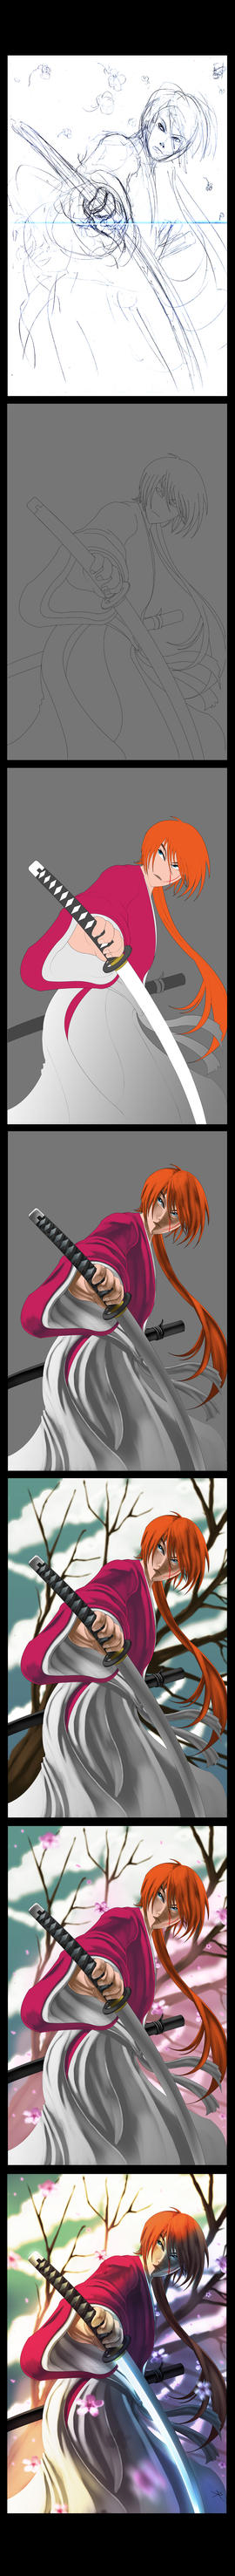 Rurouni Kenshin: Process by digitalninja